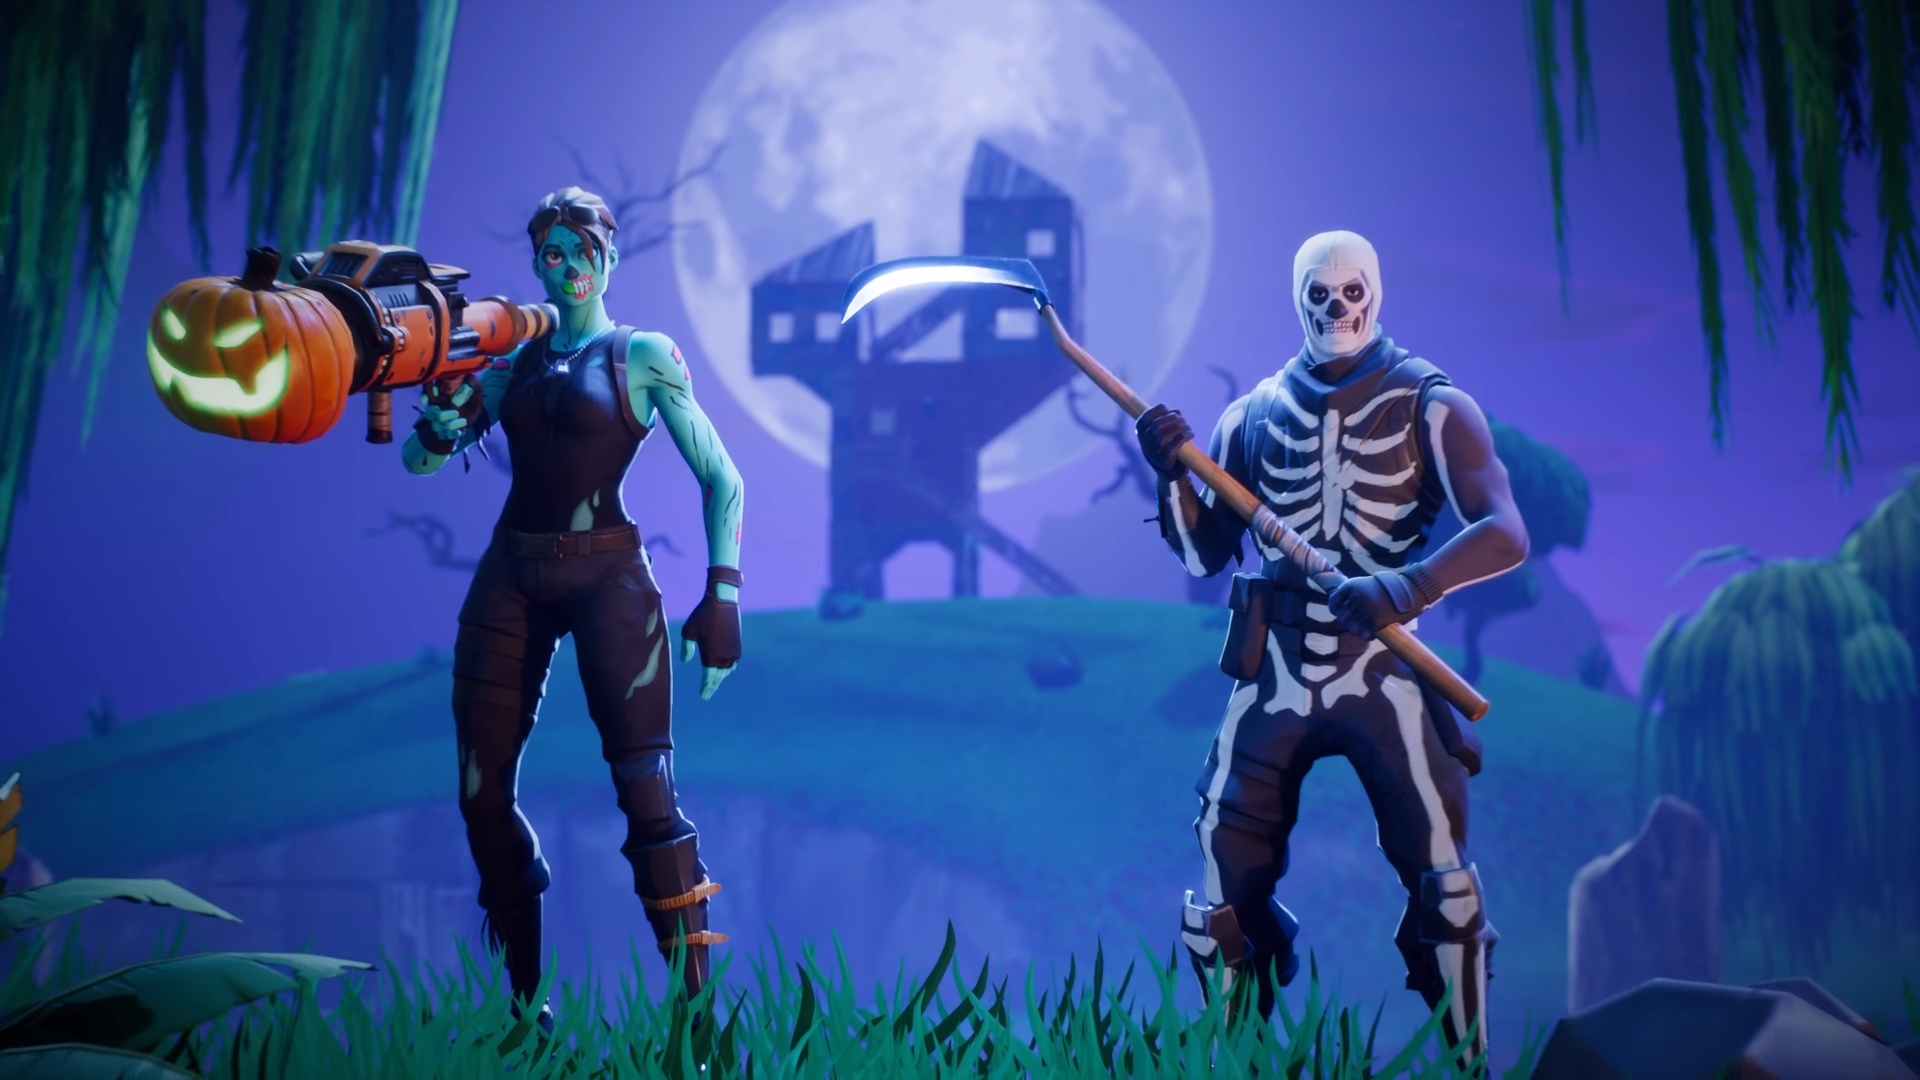 Fortnite Halloween Skins Backgrounds